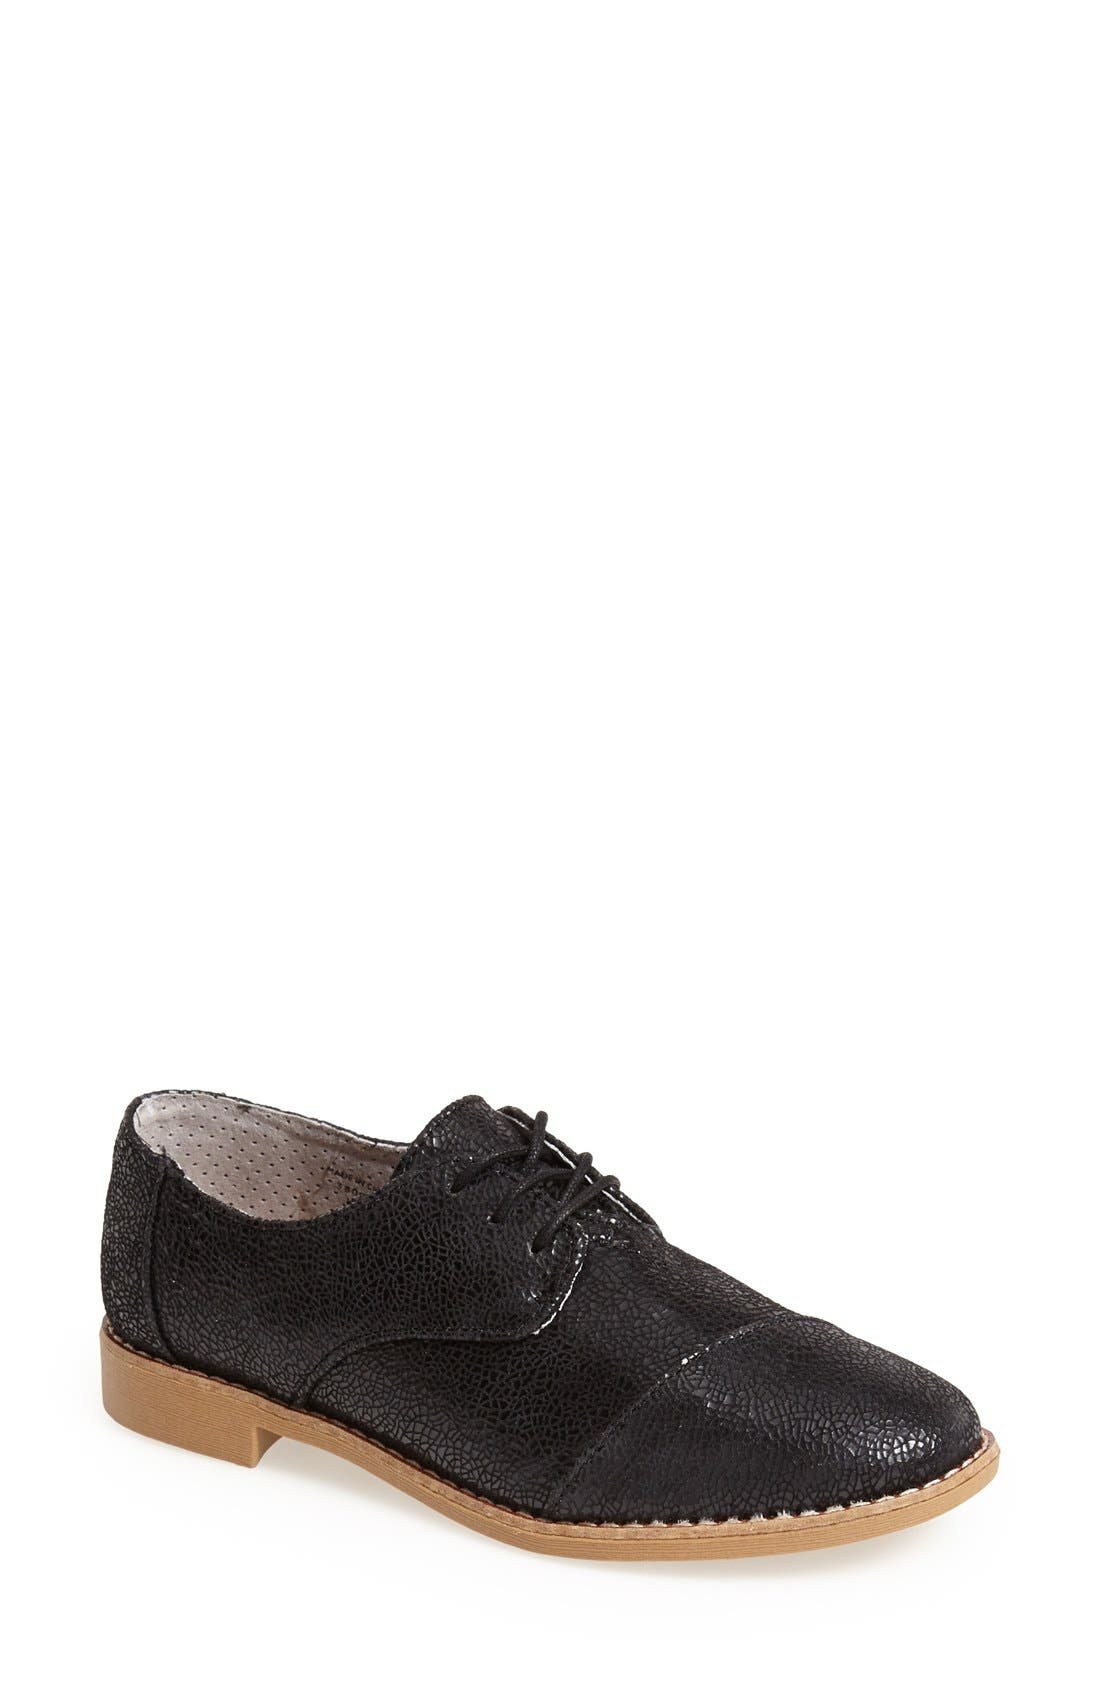 Main Image - TOMS Leather Brogue Oxford (Women)